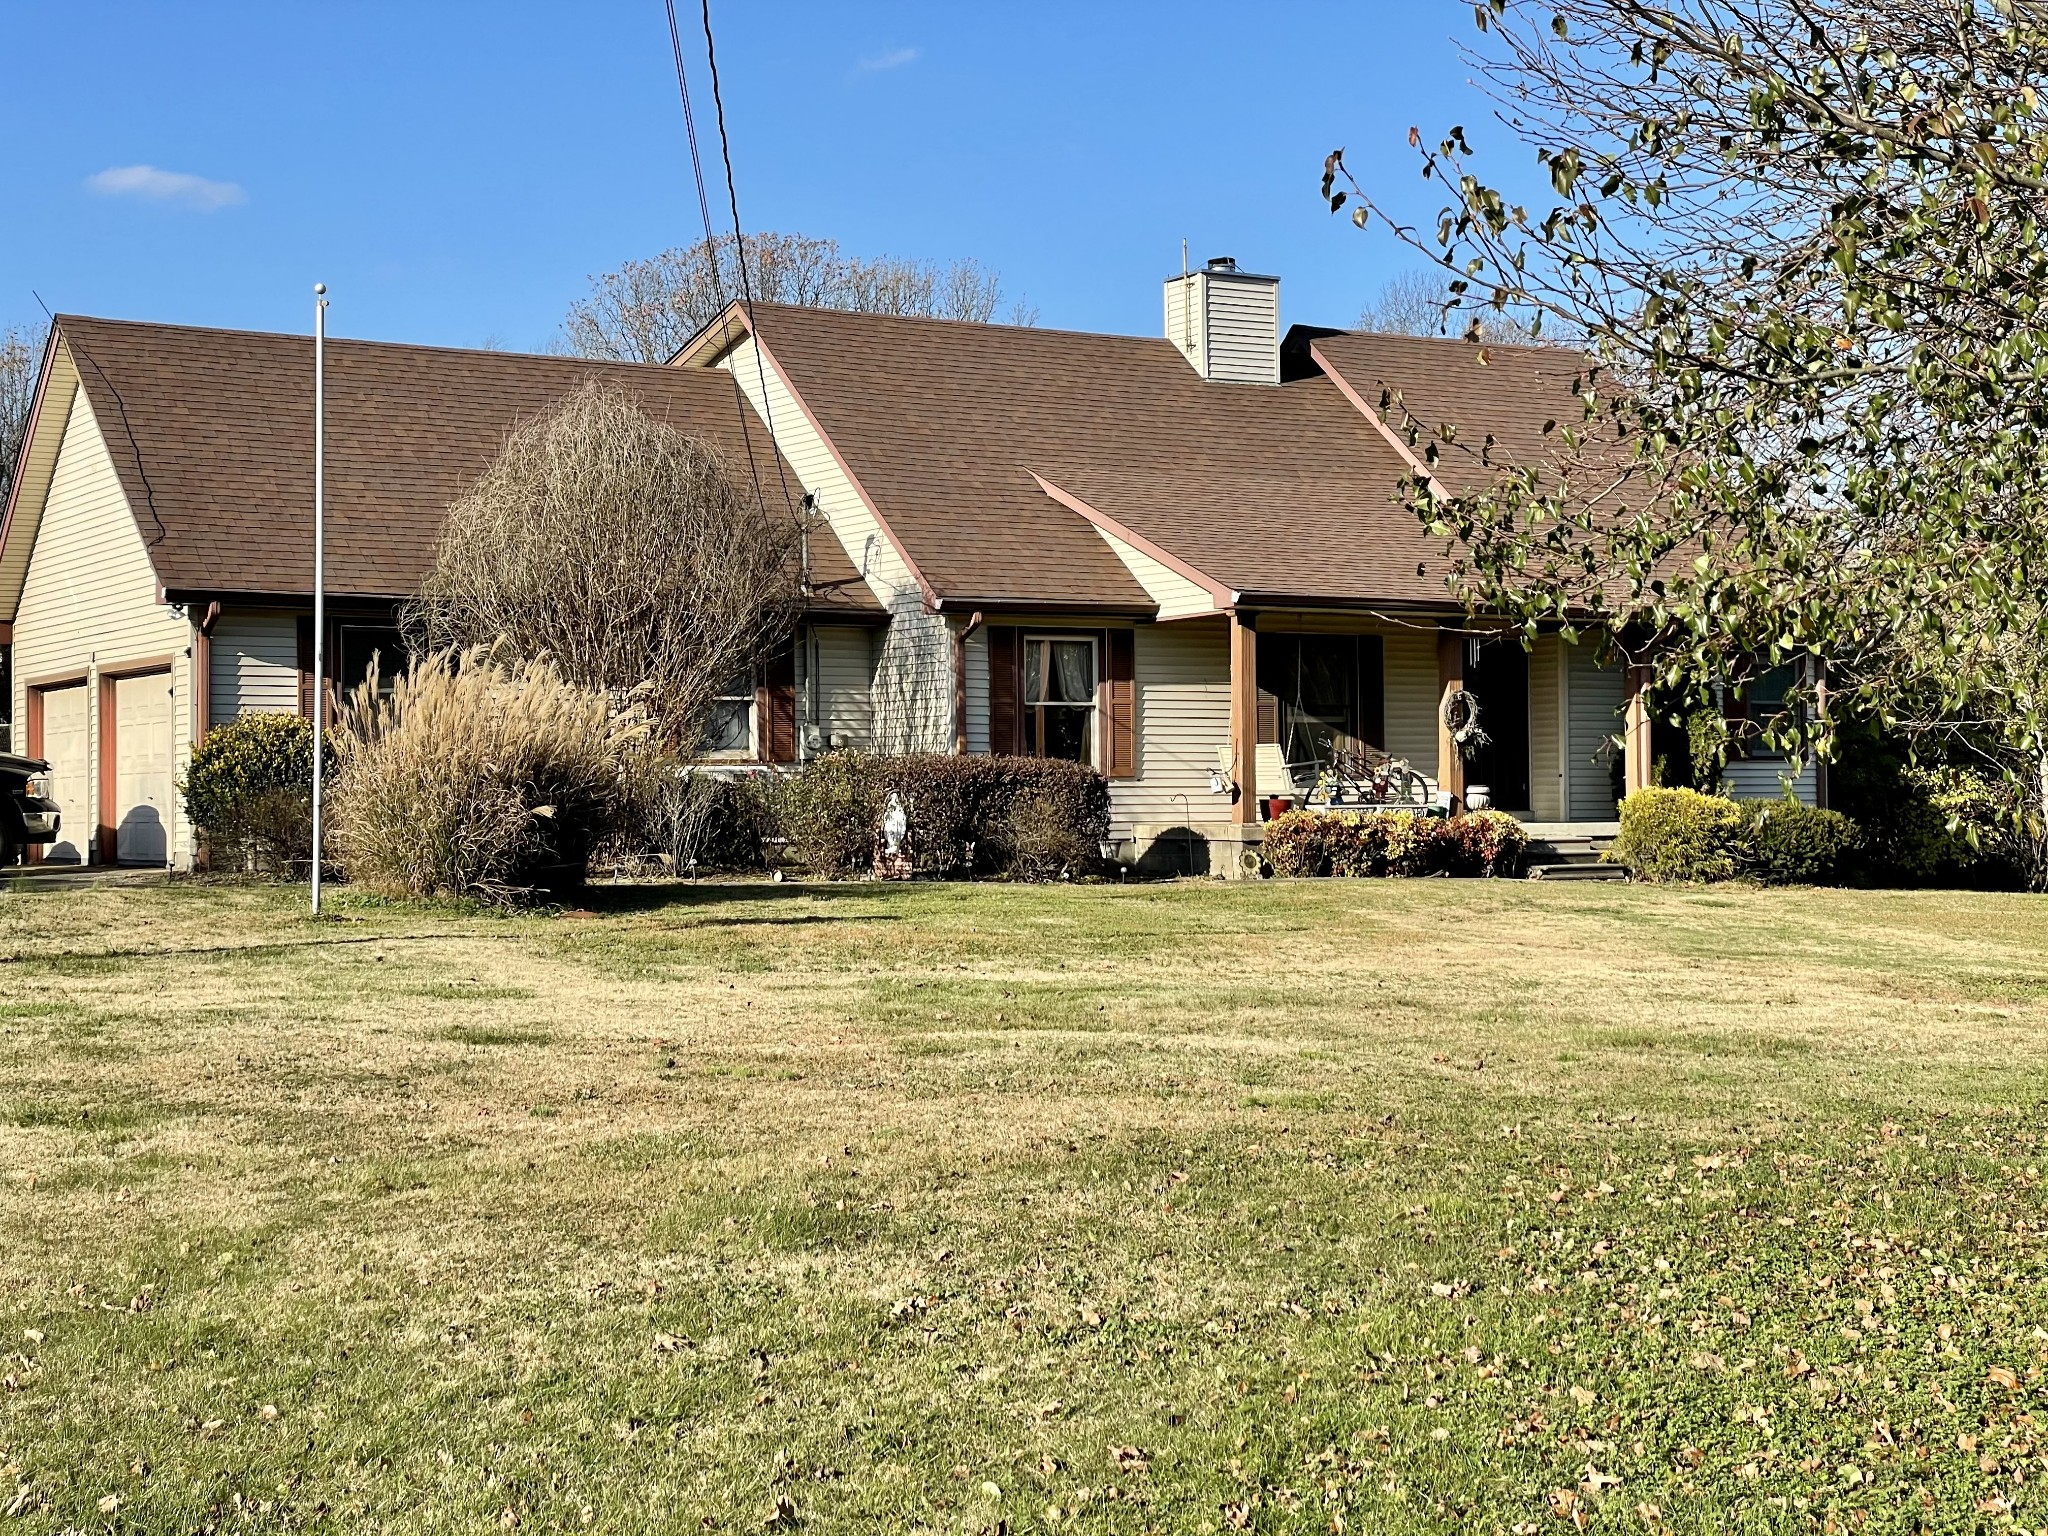 Are you looking for a private retreat in your next home? This home and 4.71 acres has it! Country living close to shopping. Custom built home features Master down, 2 Bedrooms up. Massive Den.  Separate 40X24 Garage/Workshop, beautiful trees.  30 min to Nashville, 5 min to Publix & Walmart, 30 min to Franklin.  Gorgeous Estate behind back yard. Sold AS-IS